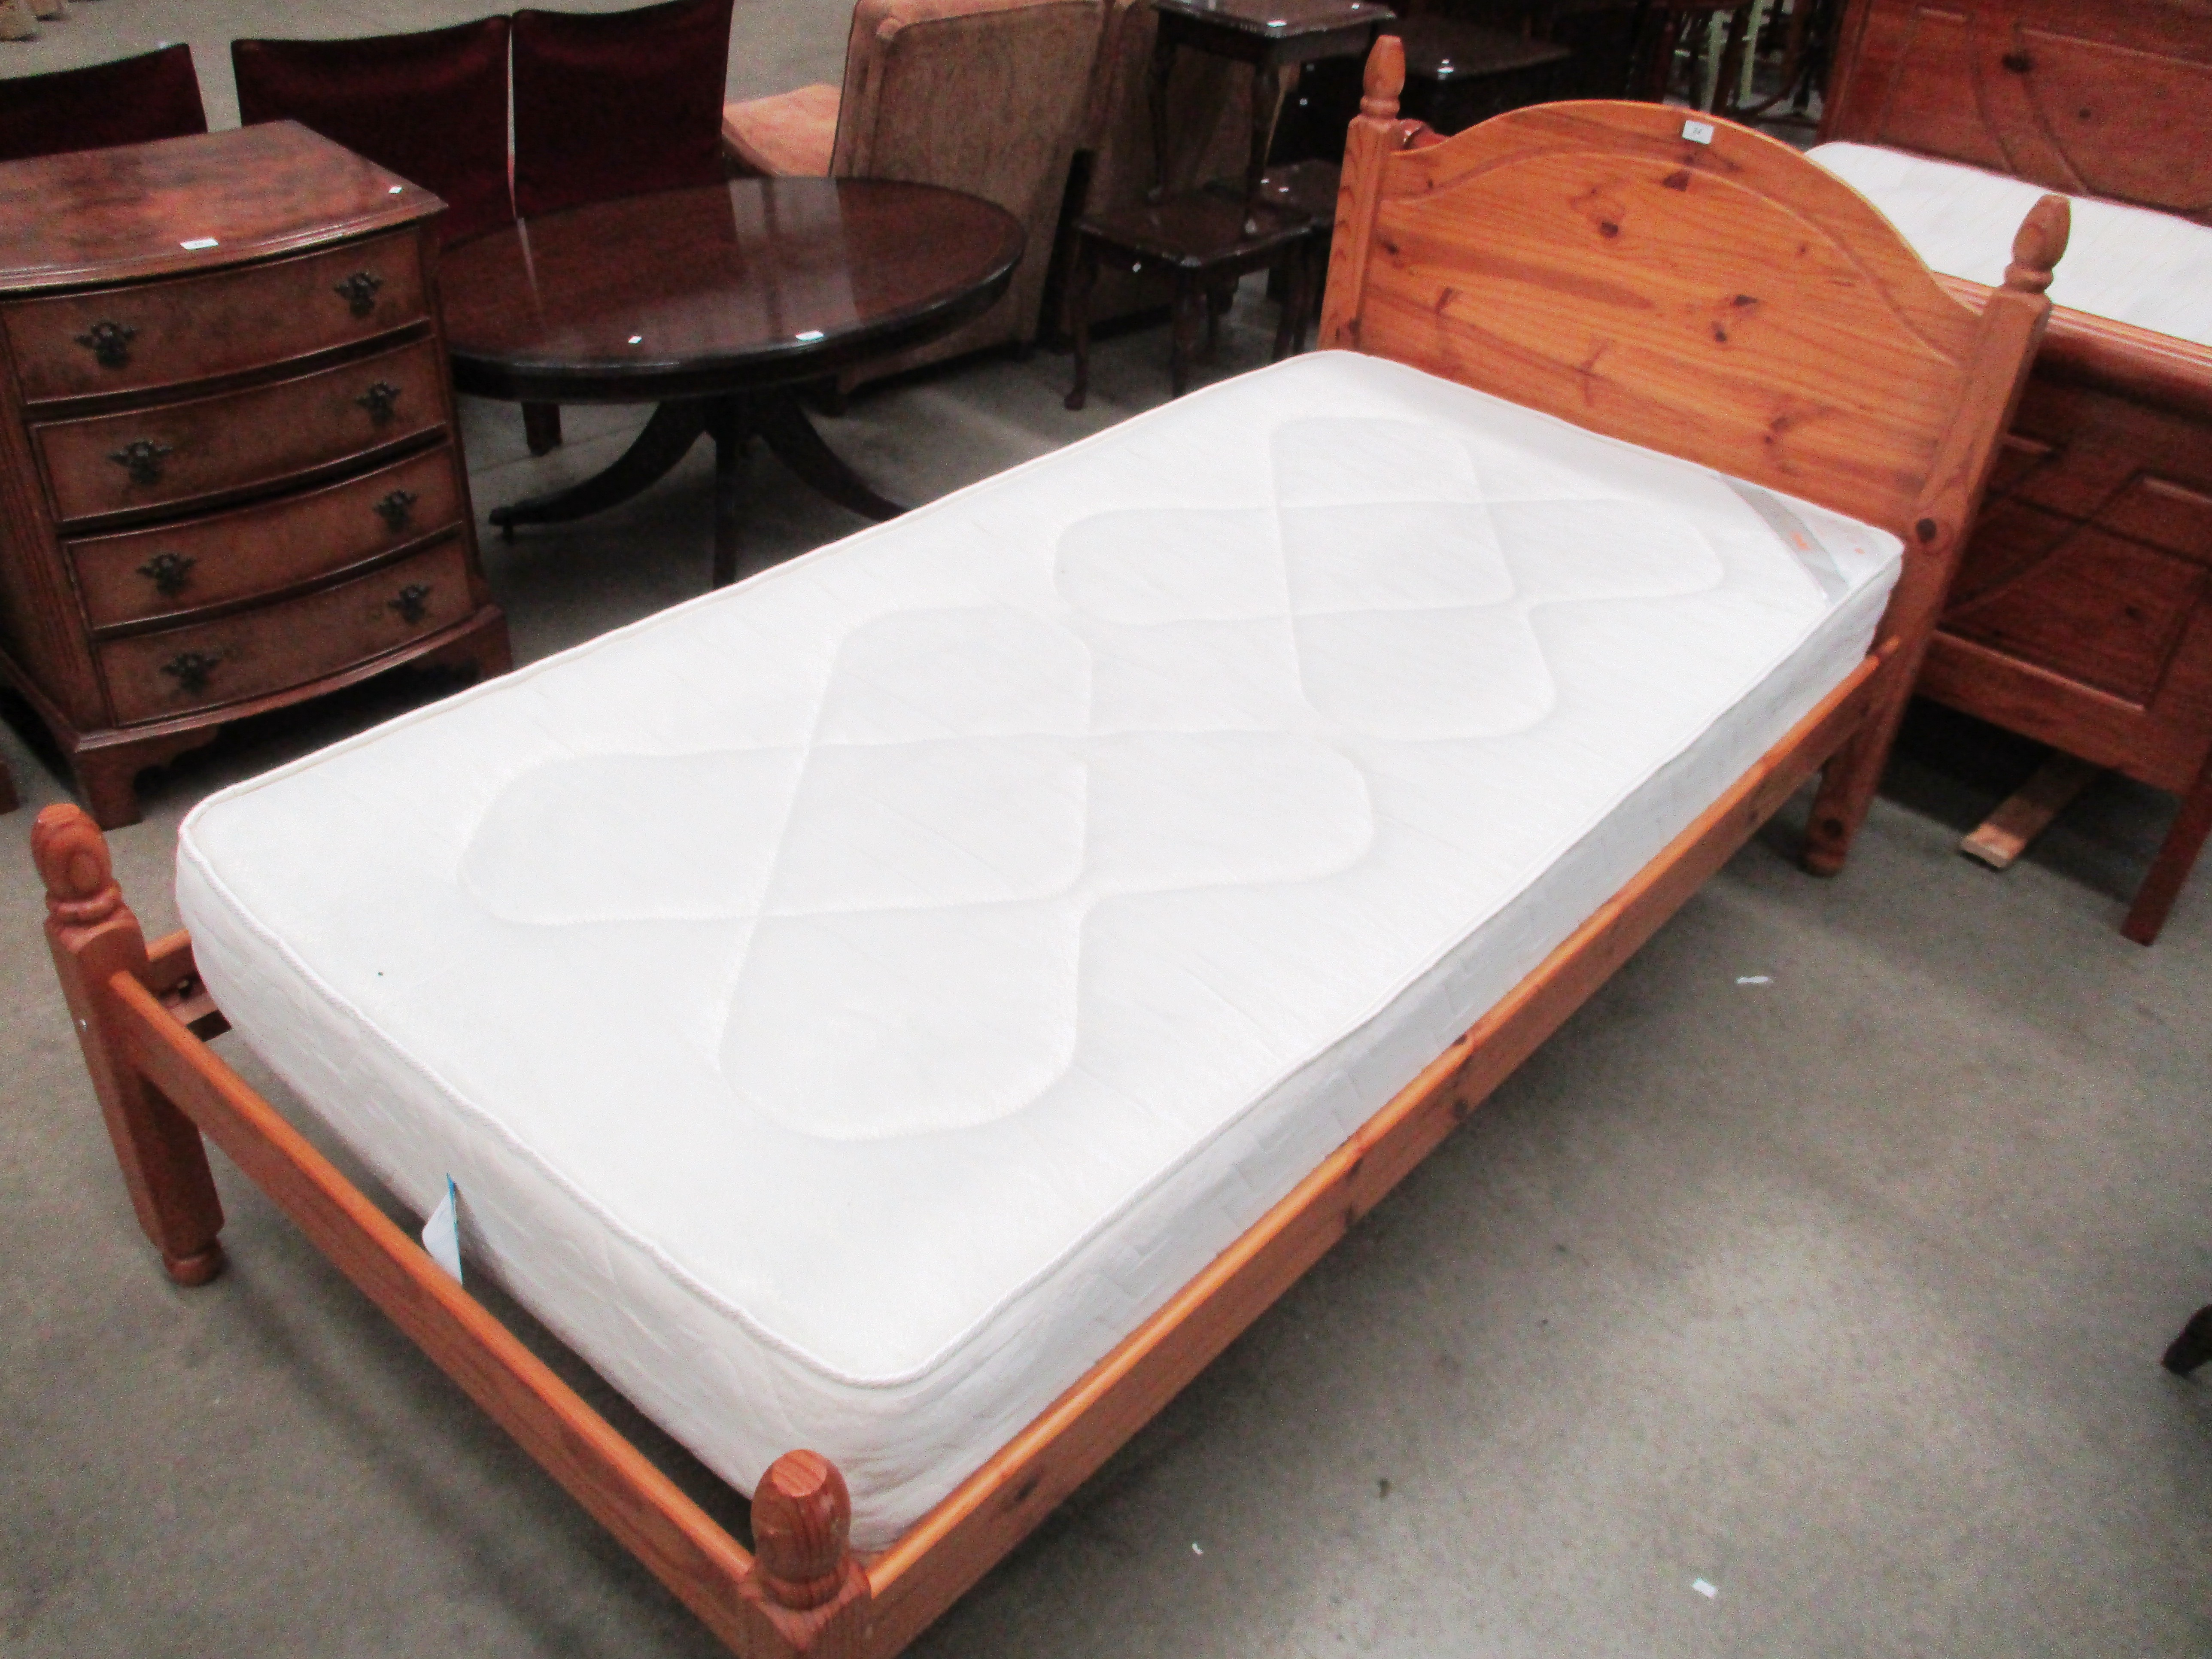 Lot 24 - A pine 3ft bed with a Sleep Mode Lincoln hypo-allergenic rotatable mattress